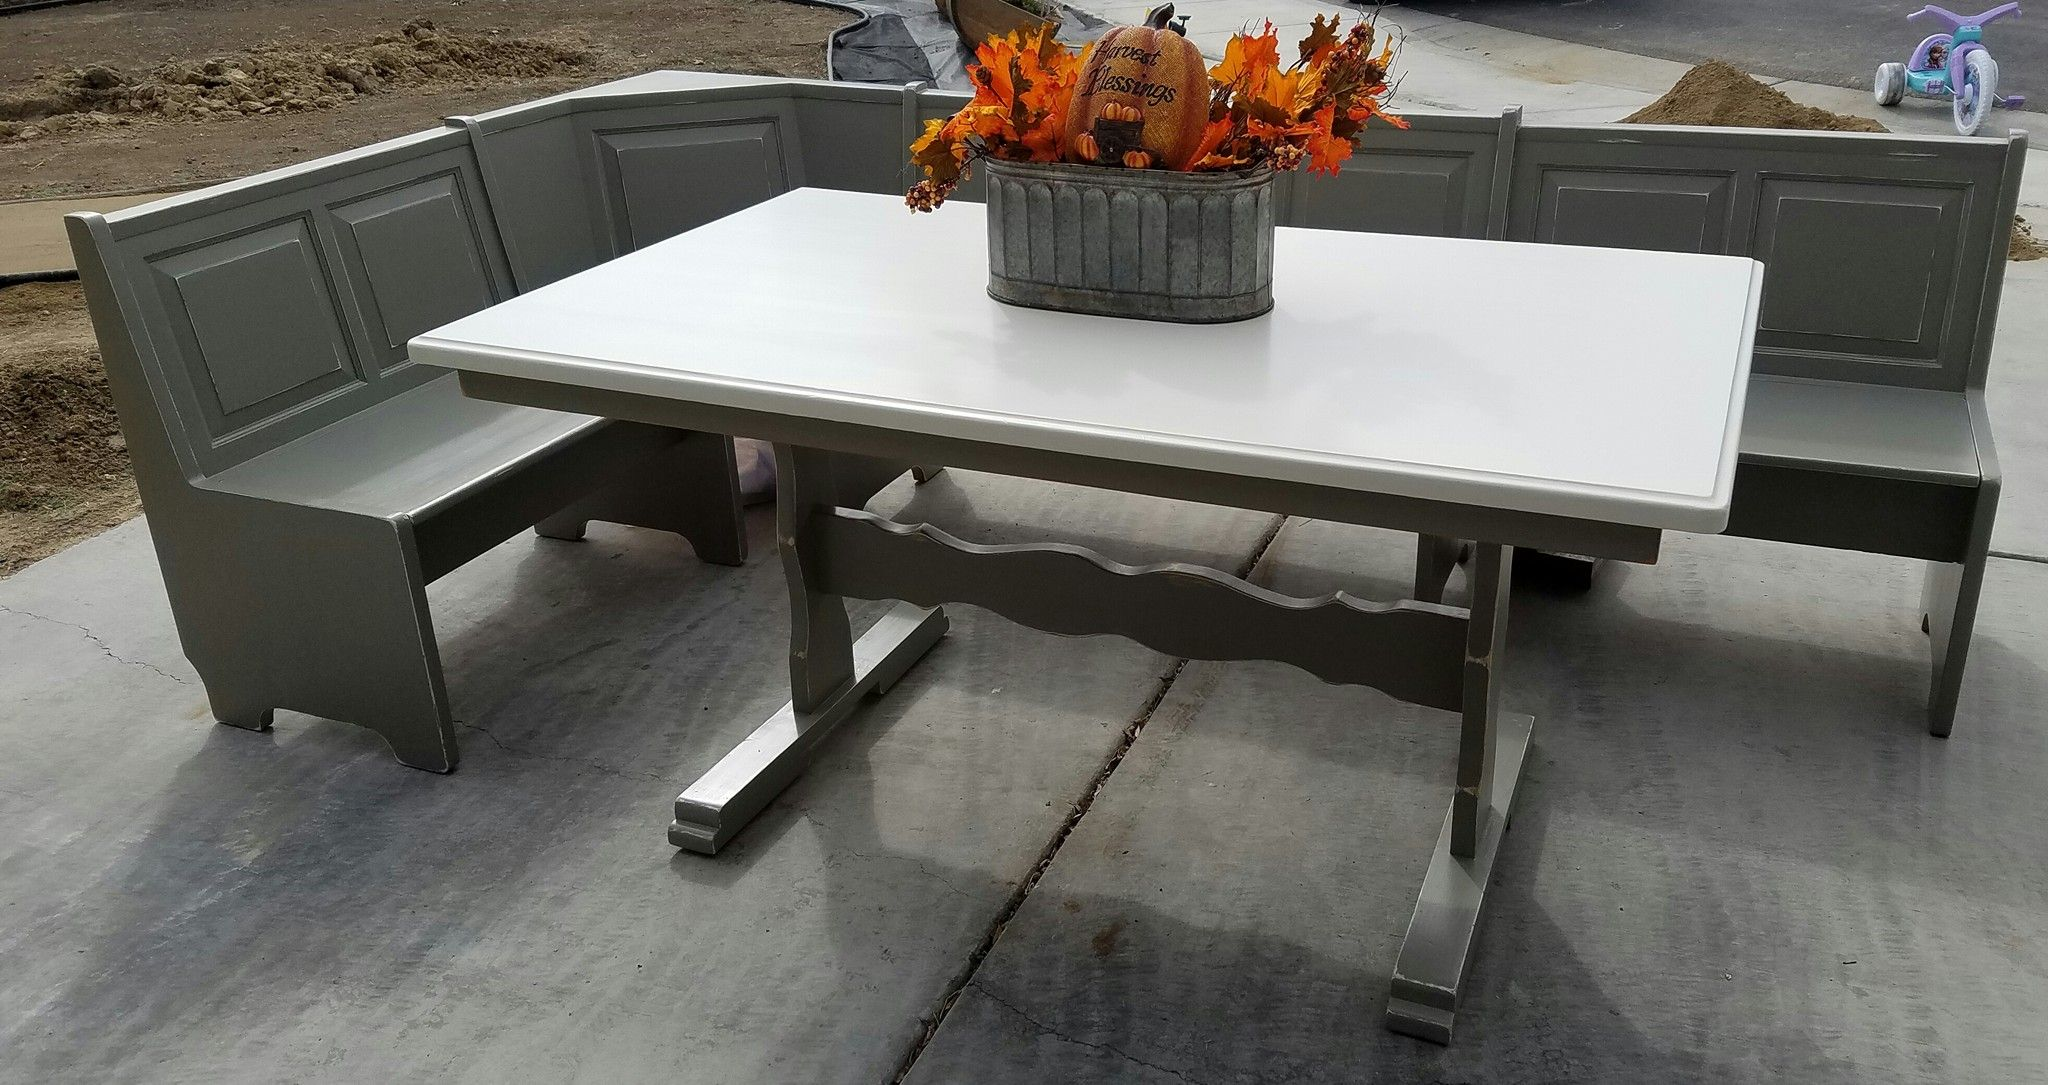 Reloved in General Finishes Empire Grey Chalk Paint and GF Antique White top. Many more years for this charmer. #generalfinishes #empiregray #antiquewhite #diningtable